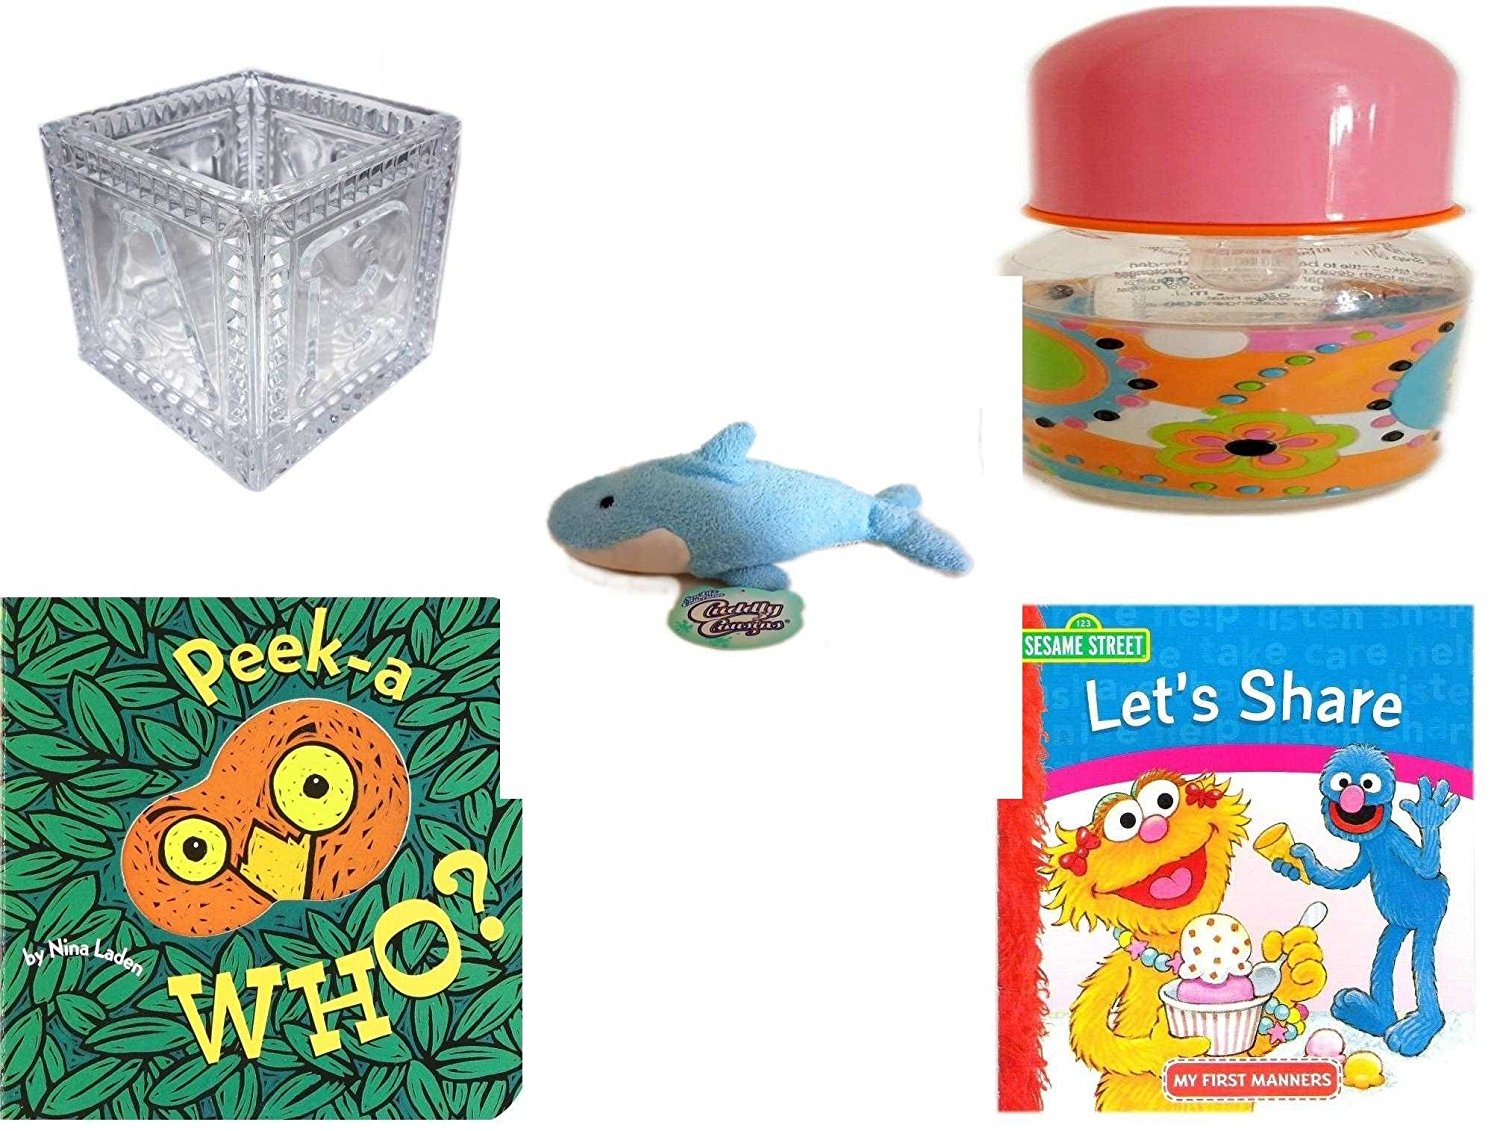 "Children's Gift Bundle - Ages 0-2 [5 Piece] - B-A-B-Y Block Container Heavy Glass - ID Gear Baby Bottle Pucci Look 4 oz - Cuddly Cousins Sealife Colleciton Whale Shark Plush 9"" - Peek-a-WHO? Board B"